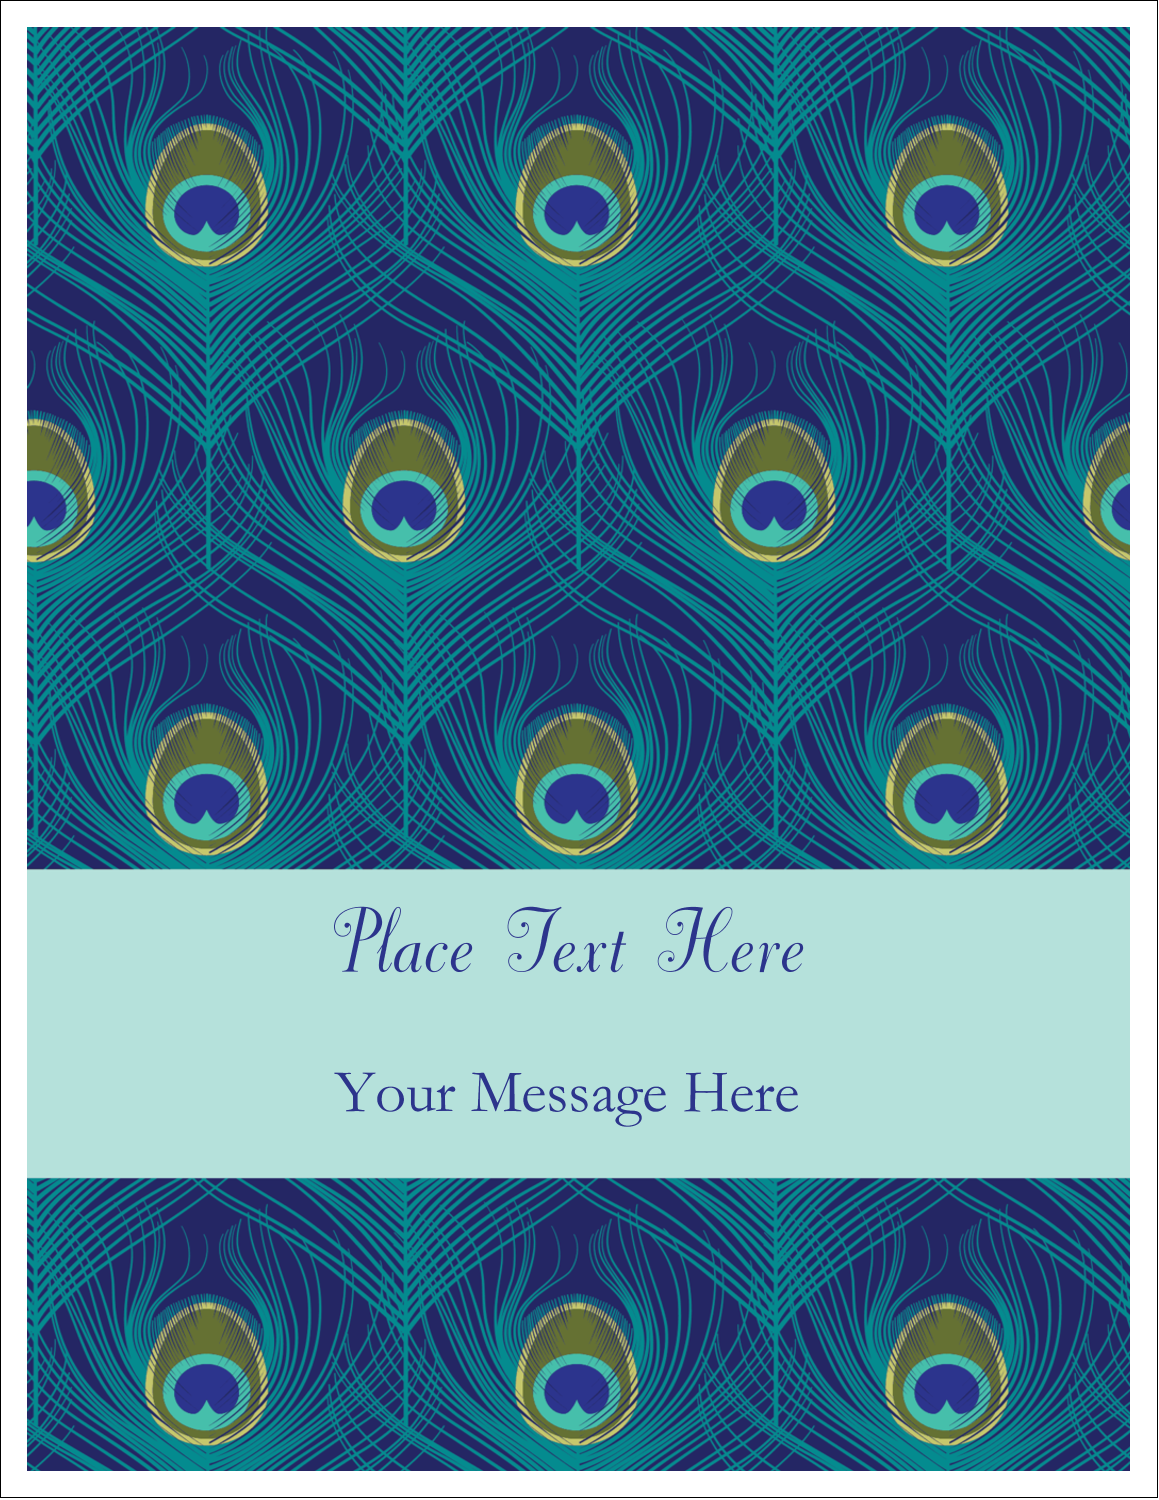 Add some flair to your next project with these pre-designed playful Peacock templates.